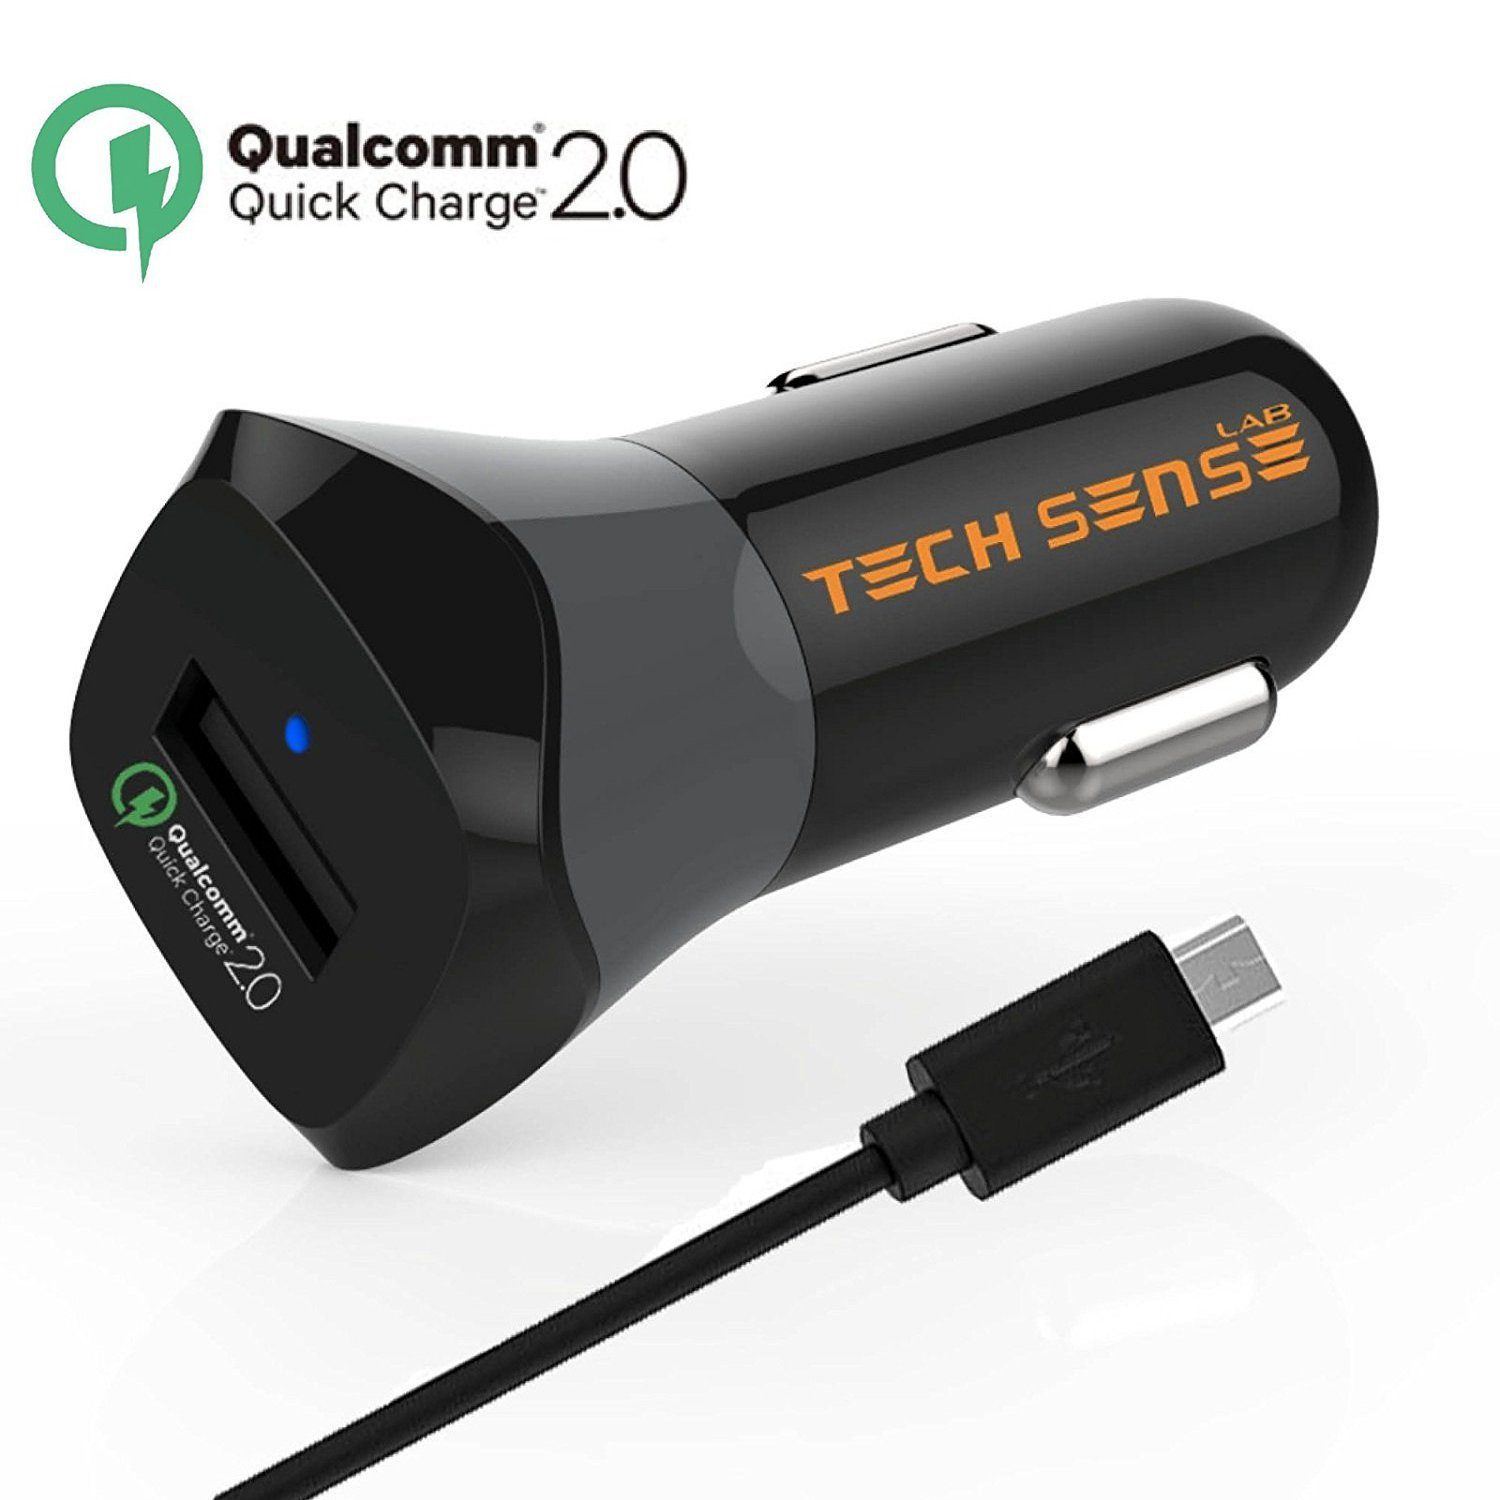 Tech Sense Lab Qualcomm Certified Quick Charge